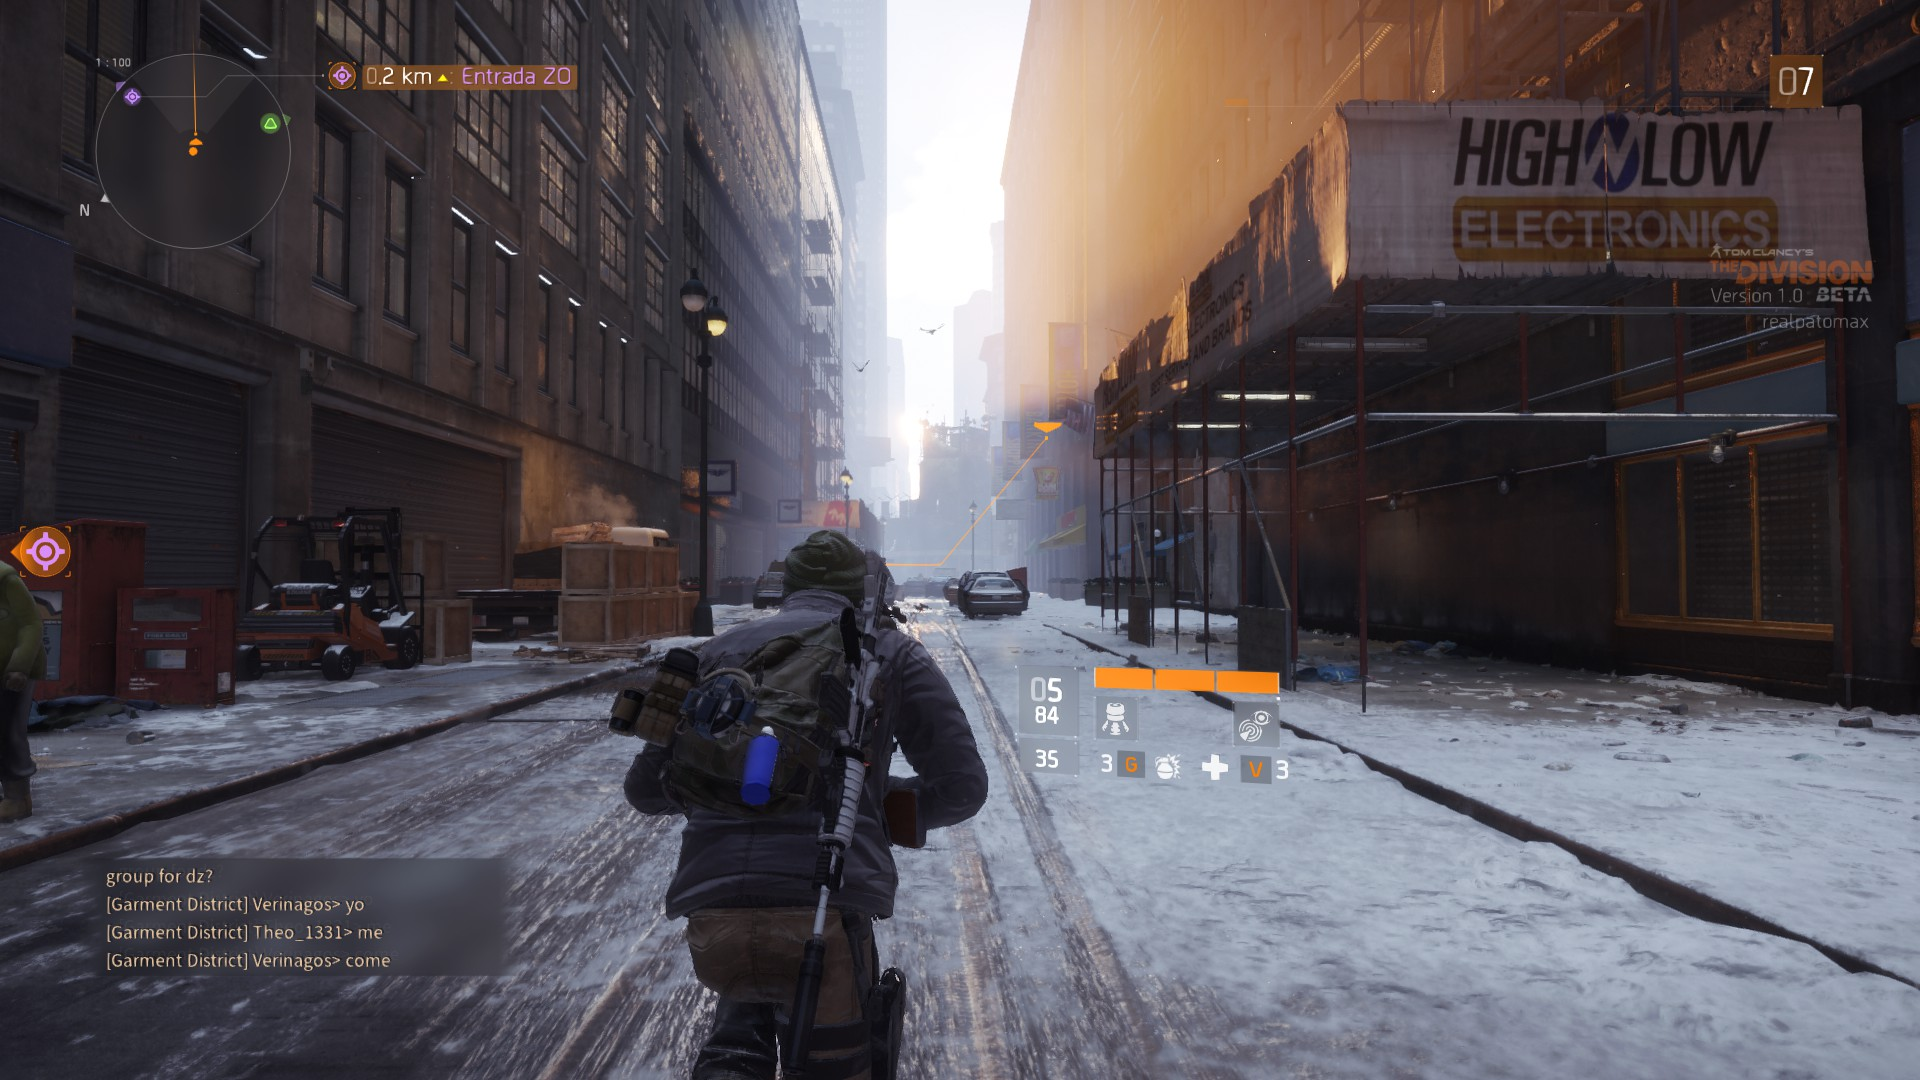 LagZero αlfa-βeta: Tom Clancy's The Division